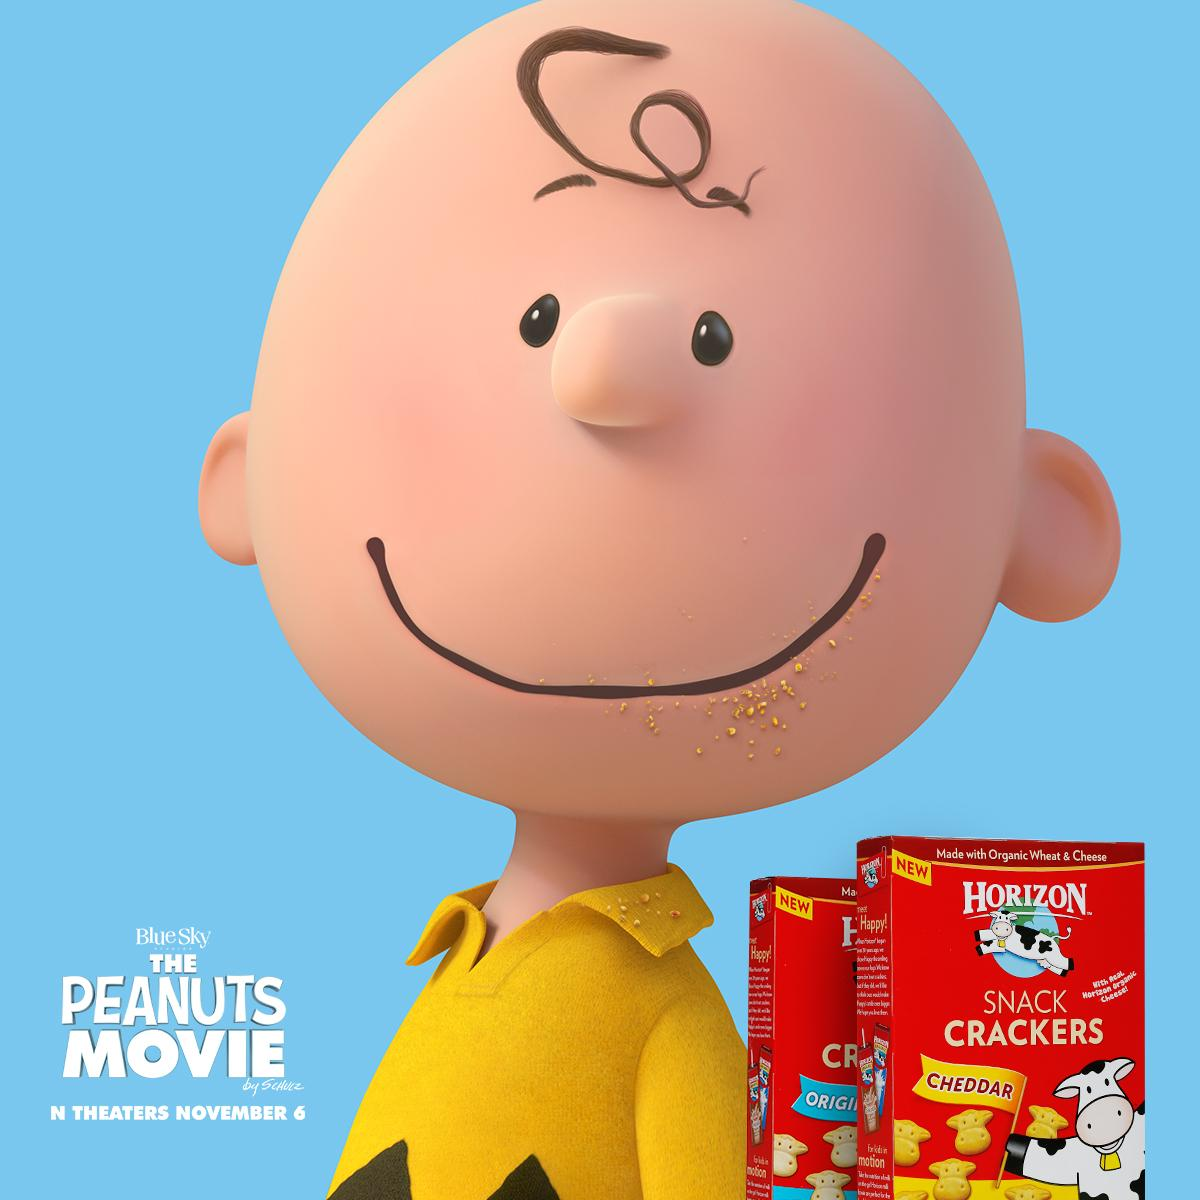 It's hard for The Peanuts Gang to resist Horizon snacks. Tag a photo of your child's Horizon #crumbface on Instagram! http://t.co/vqb8aZ0QGX